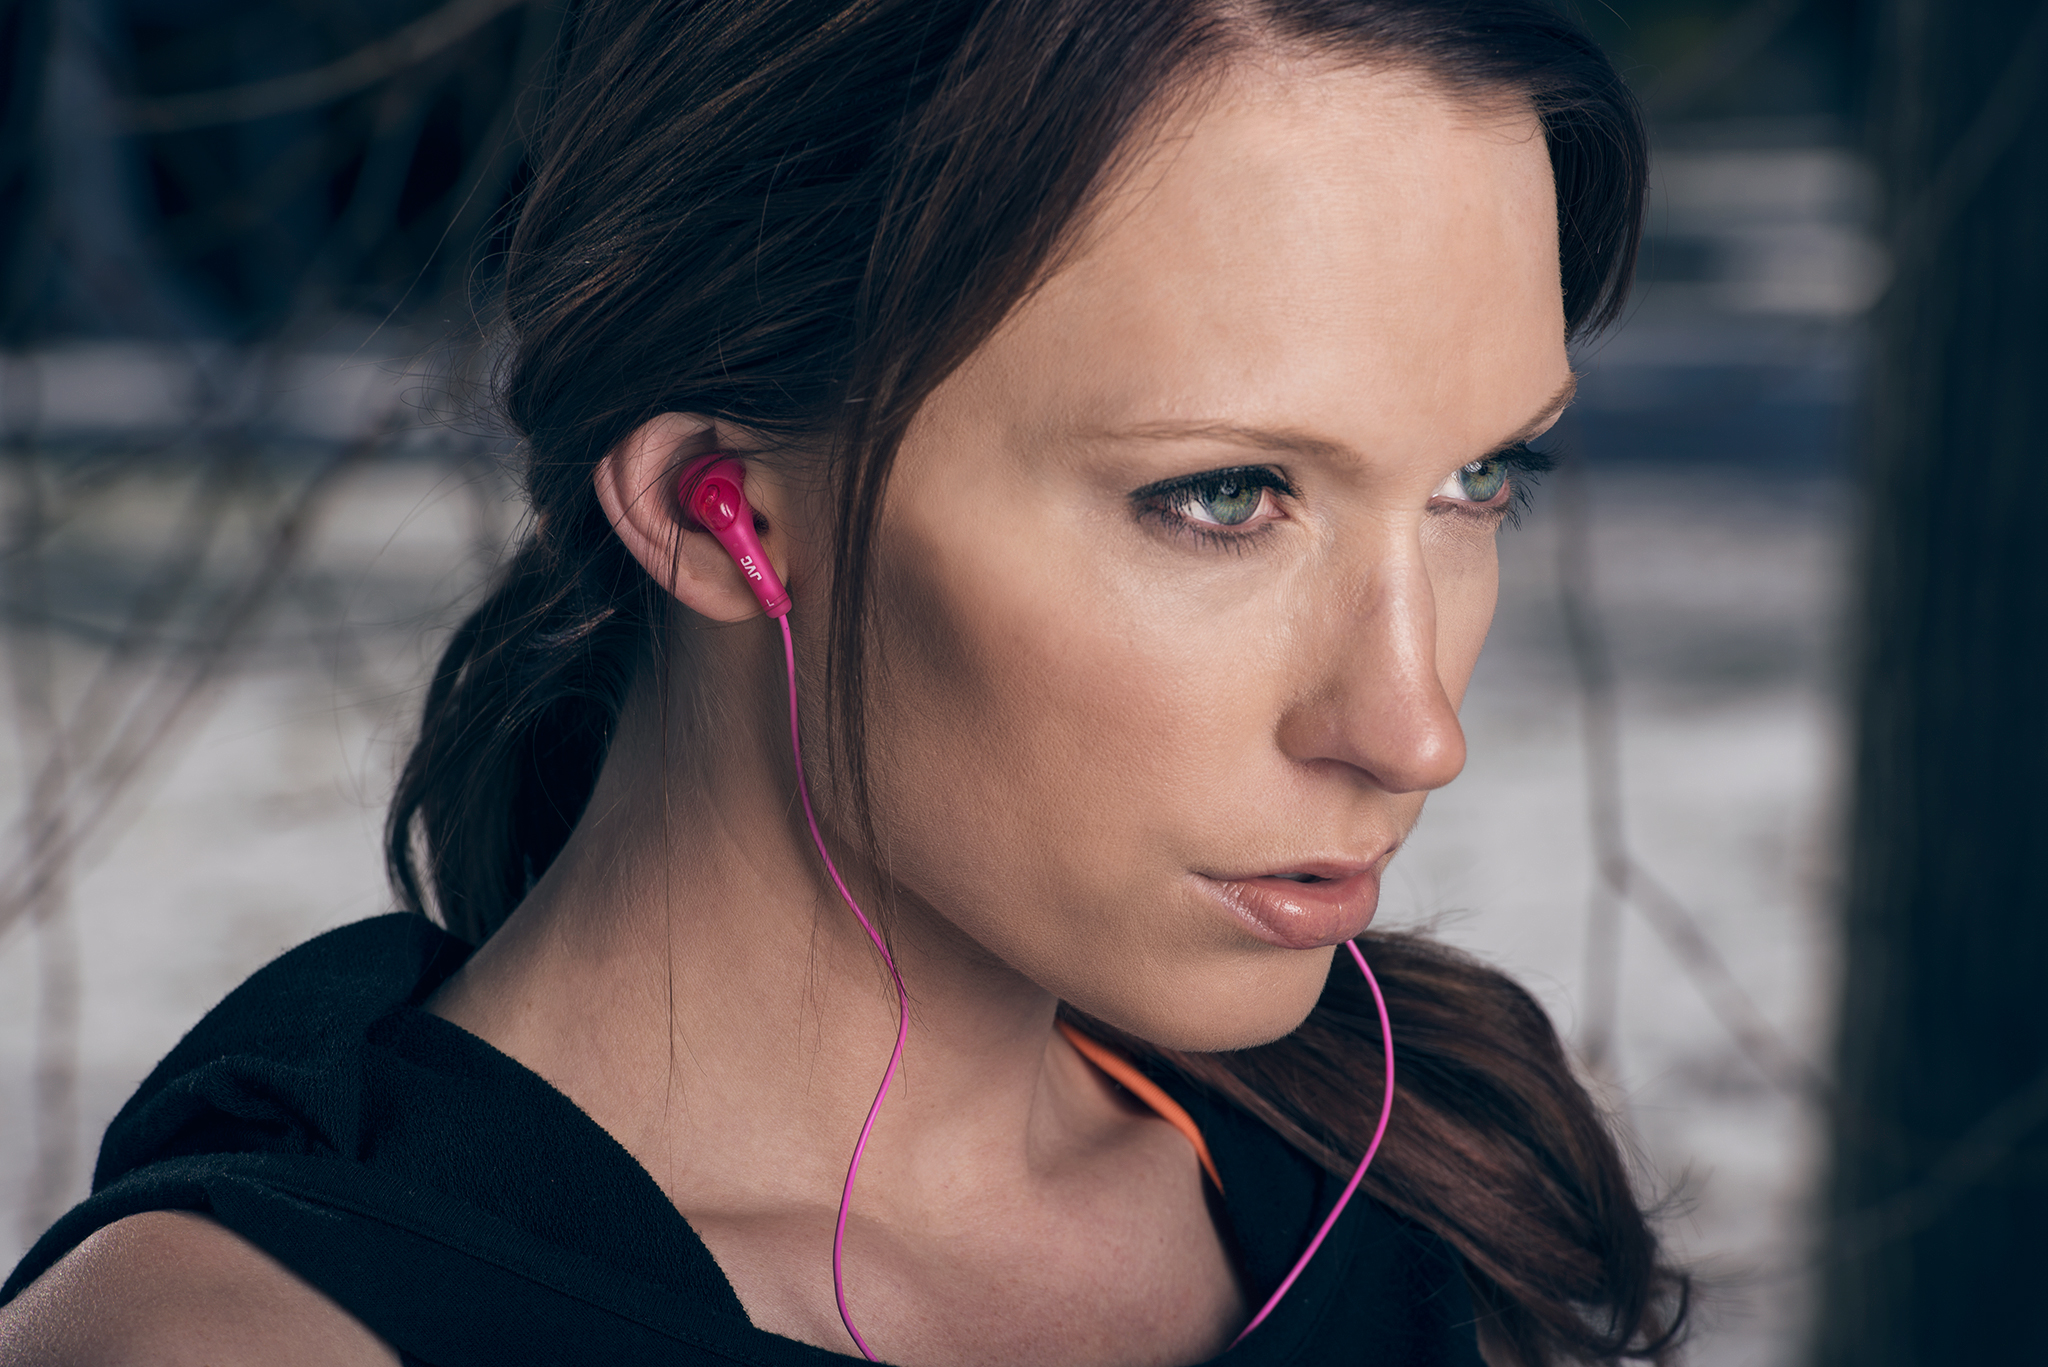 Active lifestyle and commercial portrait of female fitness model with JVC headphones